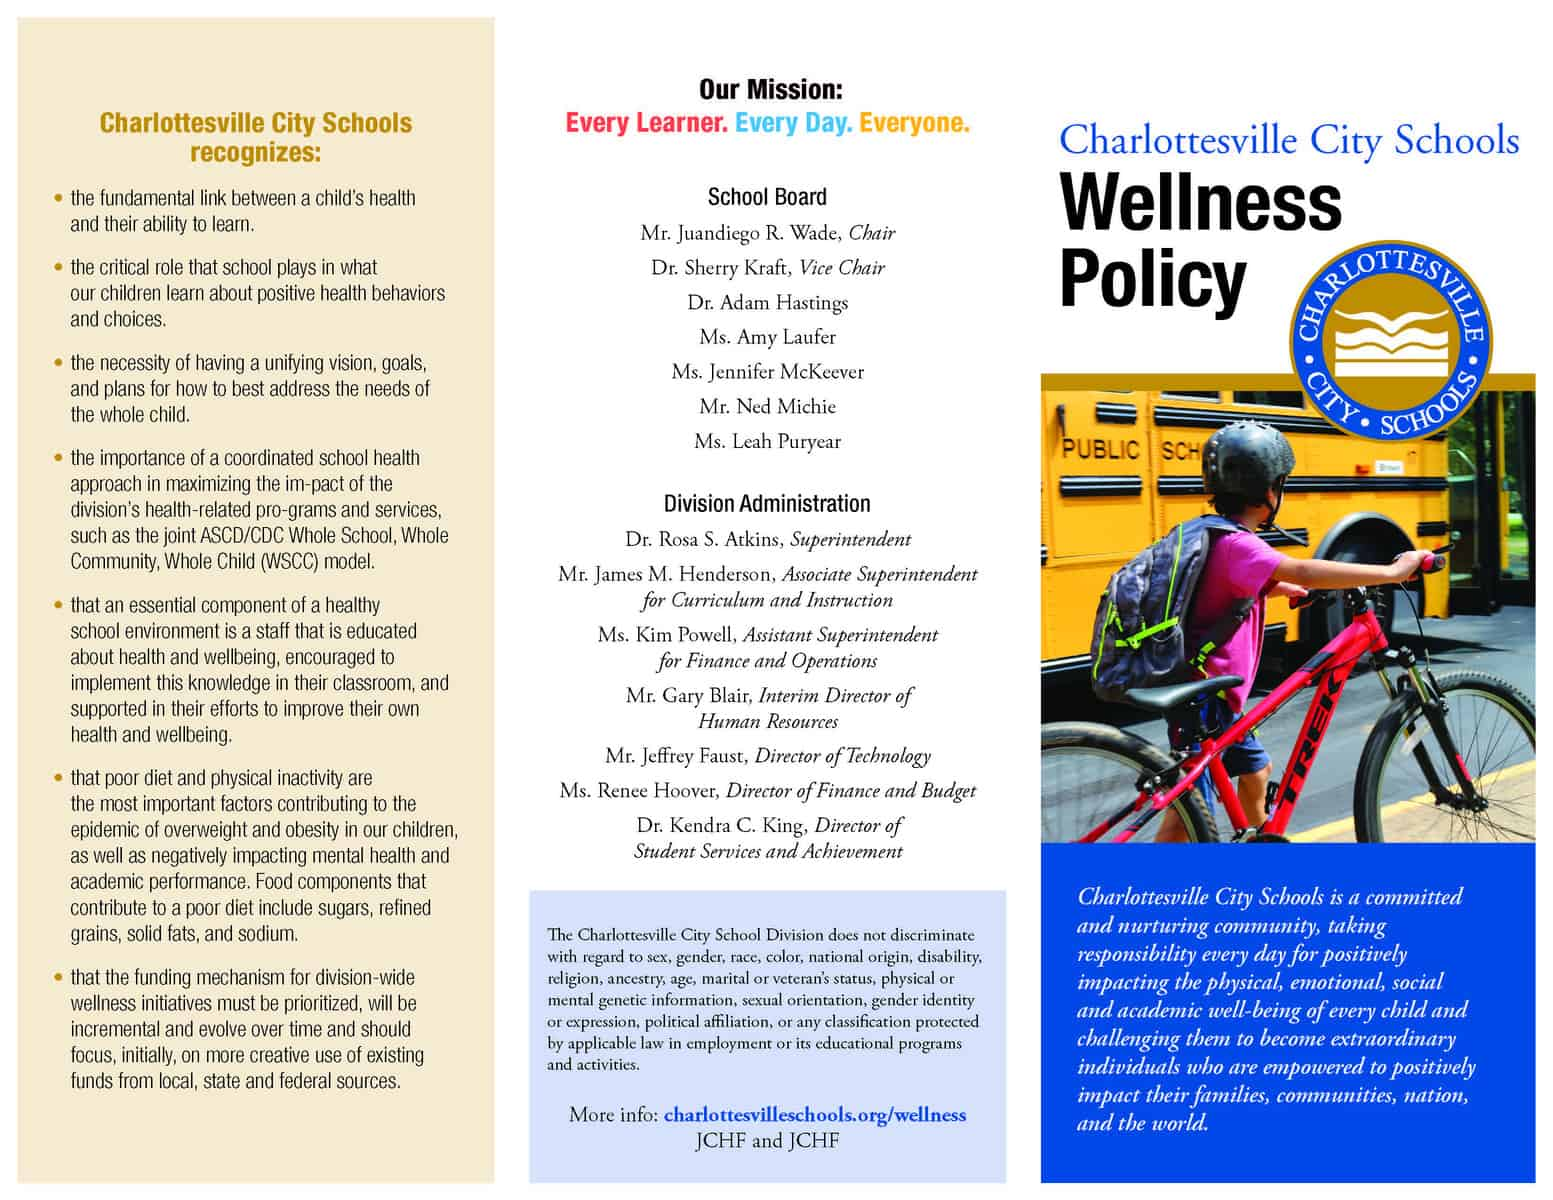 Us Departments Of Education And Health >> Wellness Charlottesville City Schools